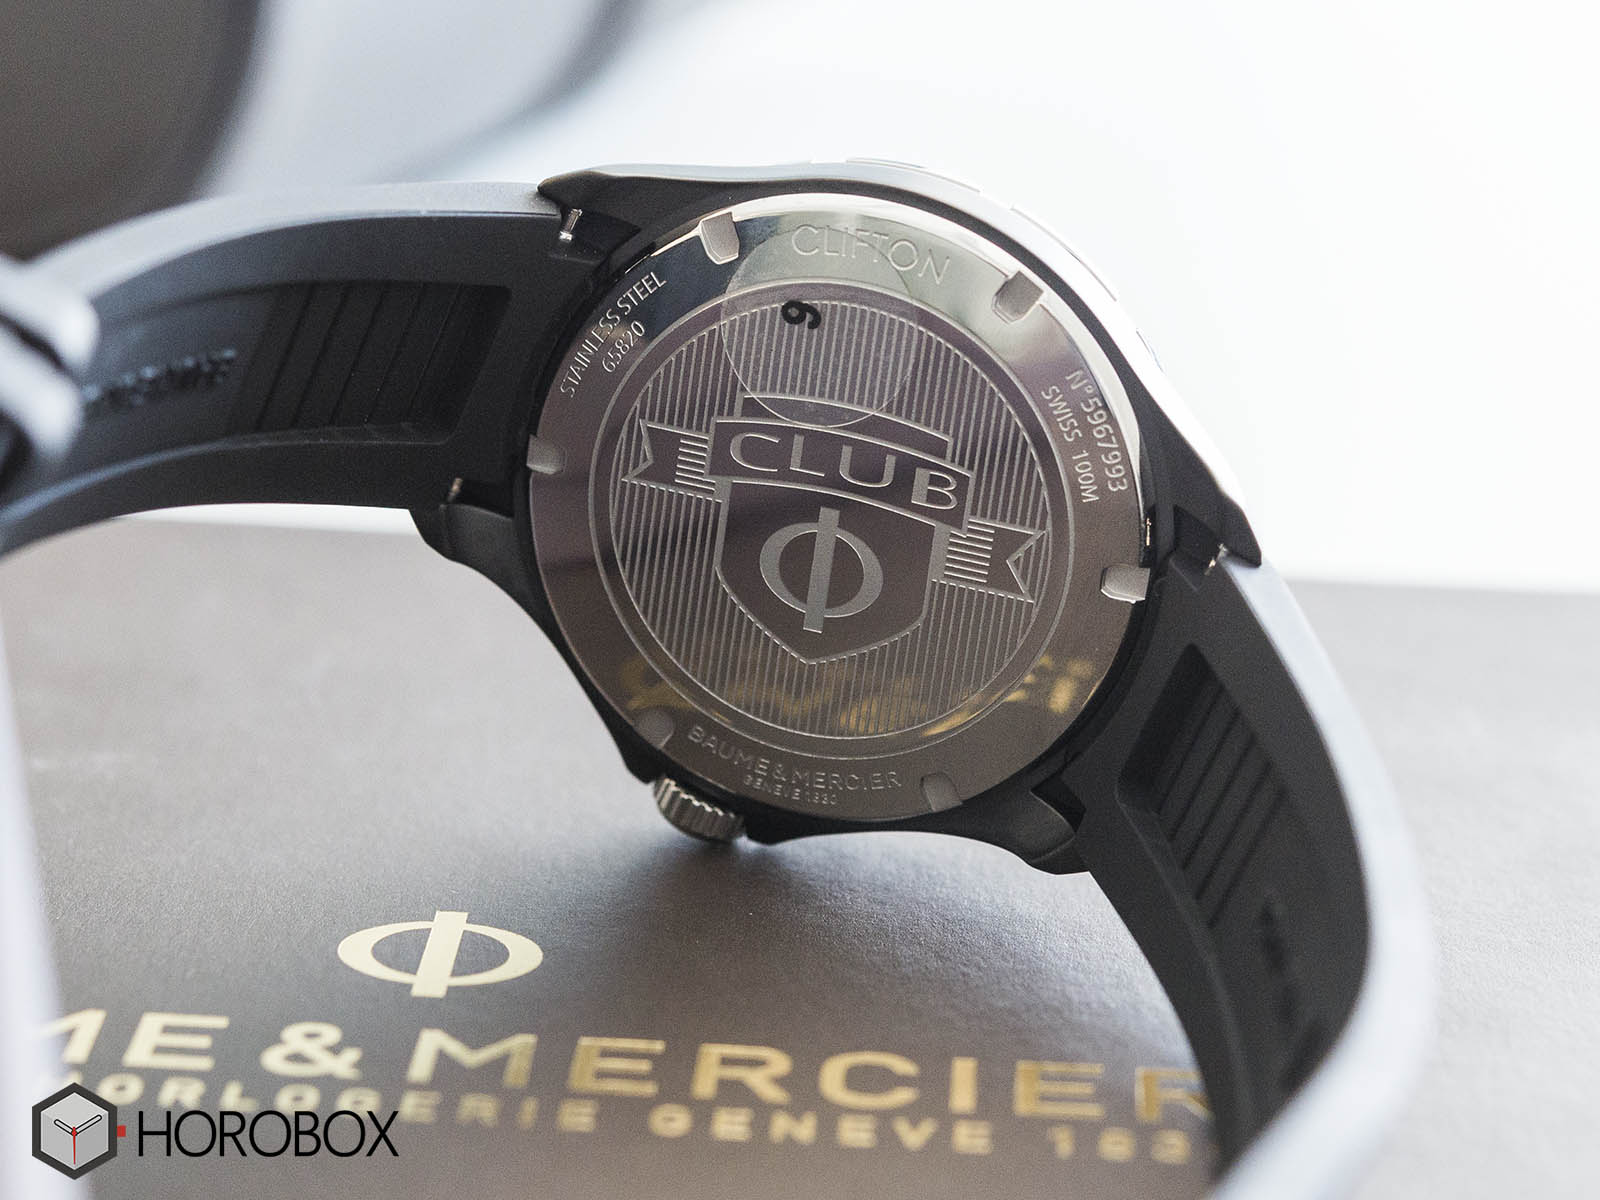 baume-mercier-clifton-club-10339-7-.jpg